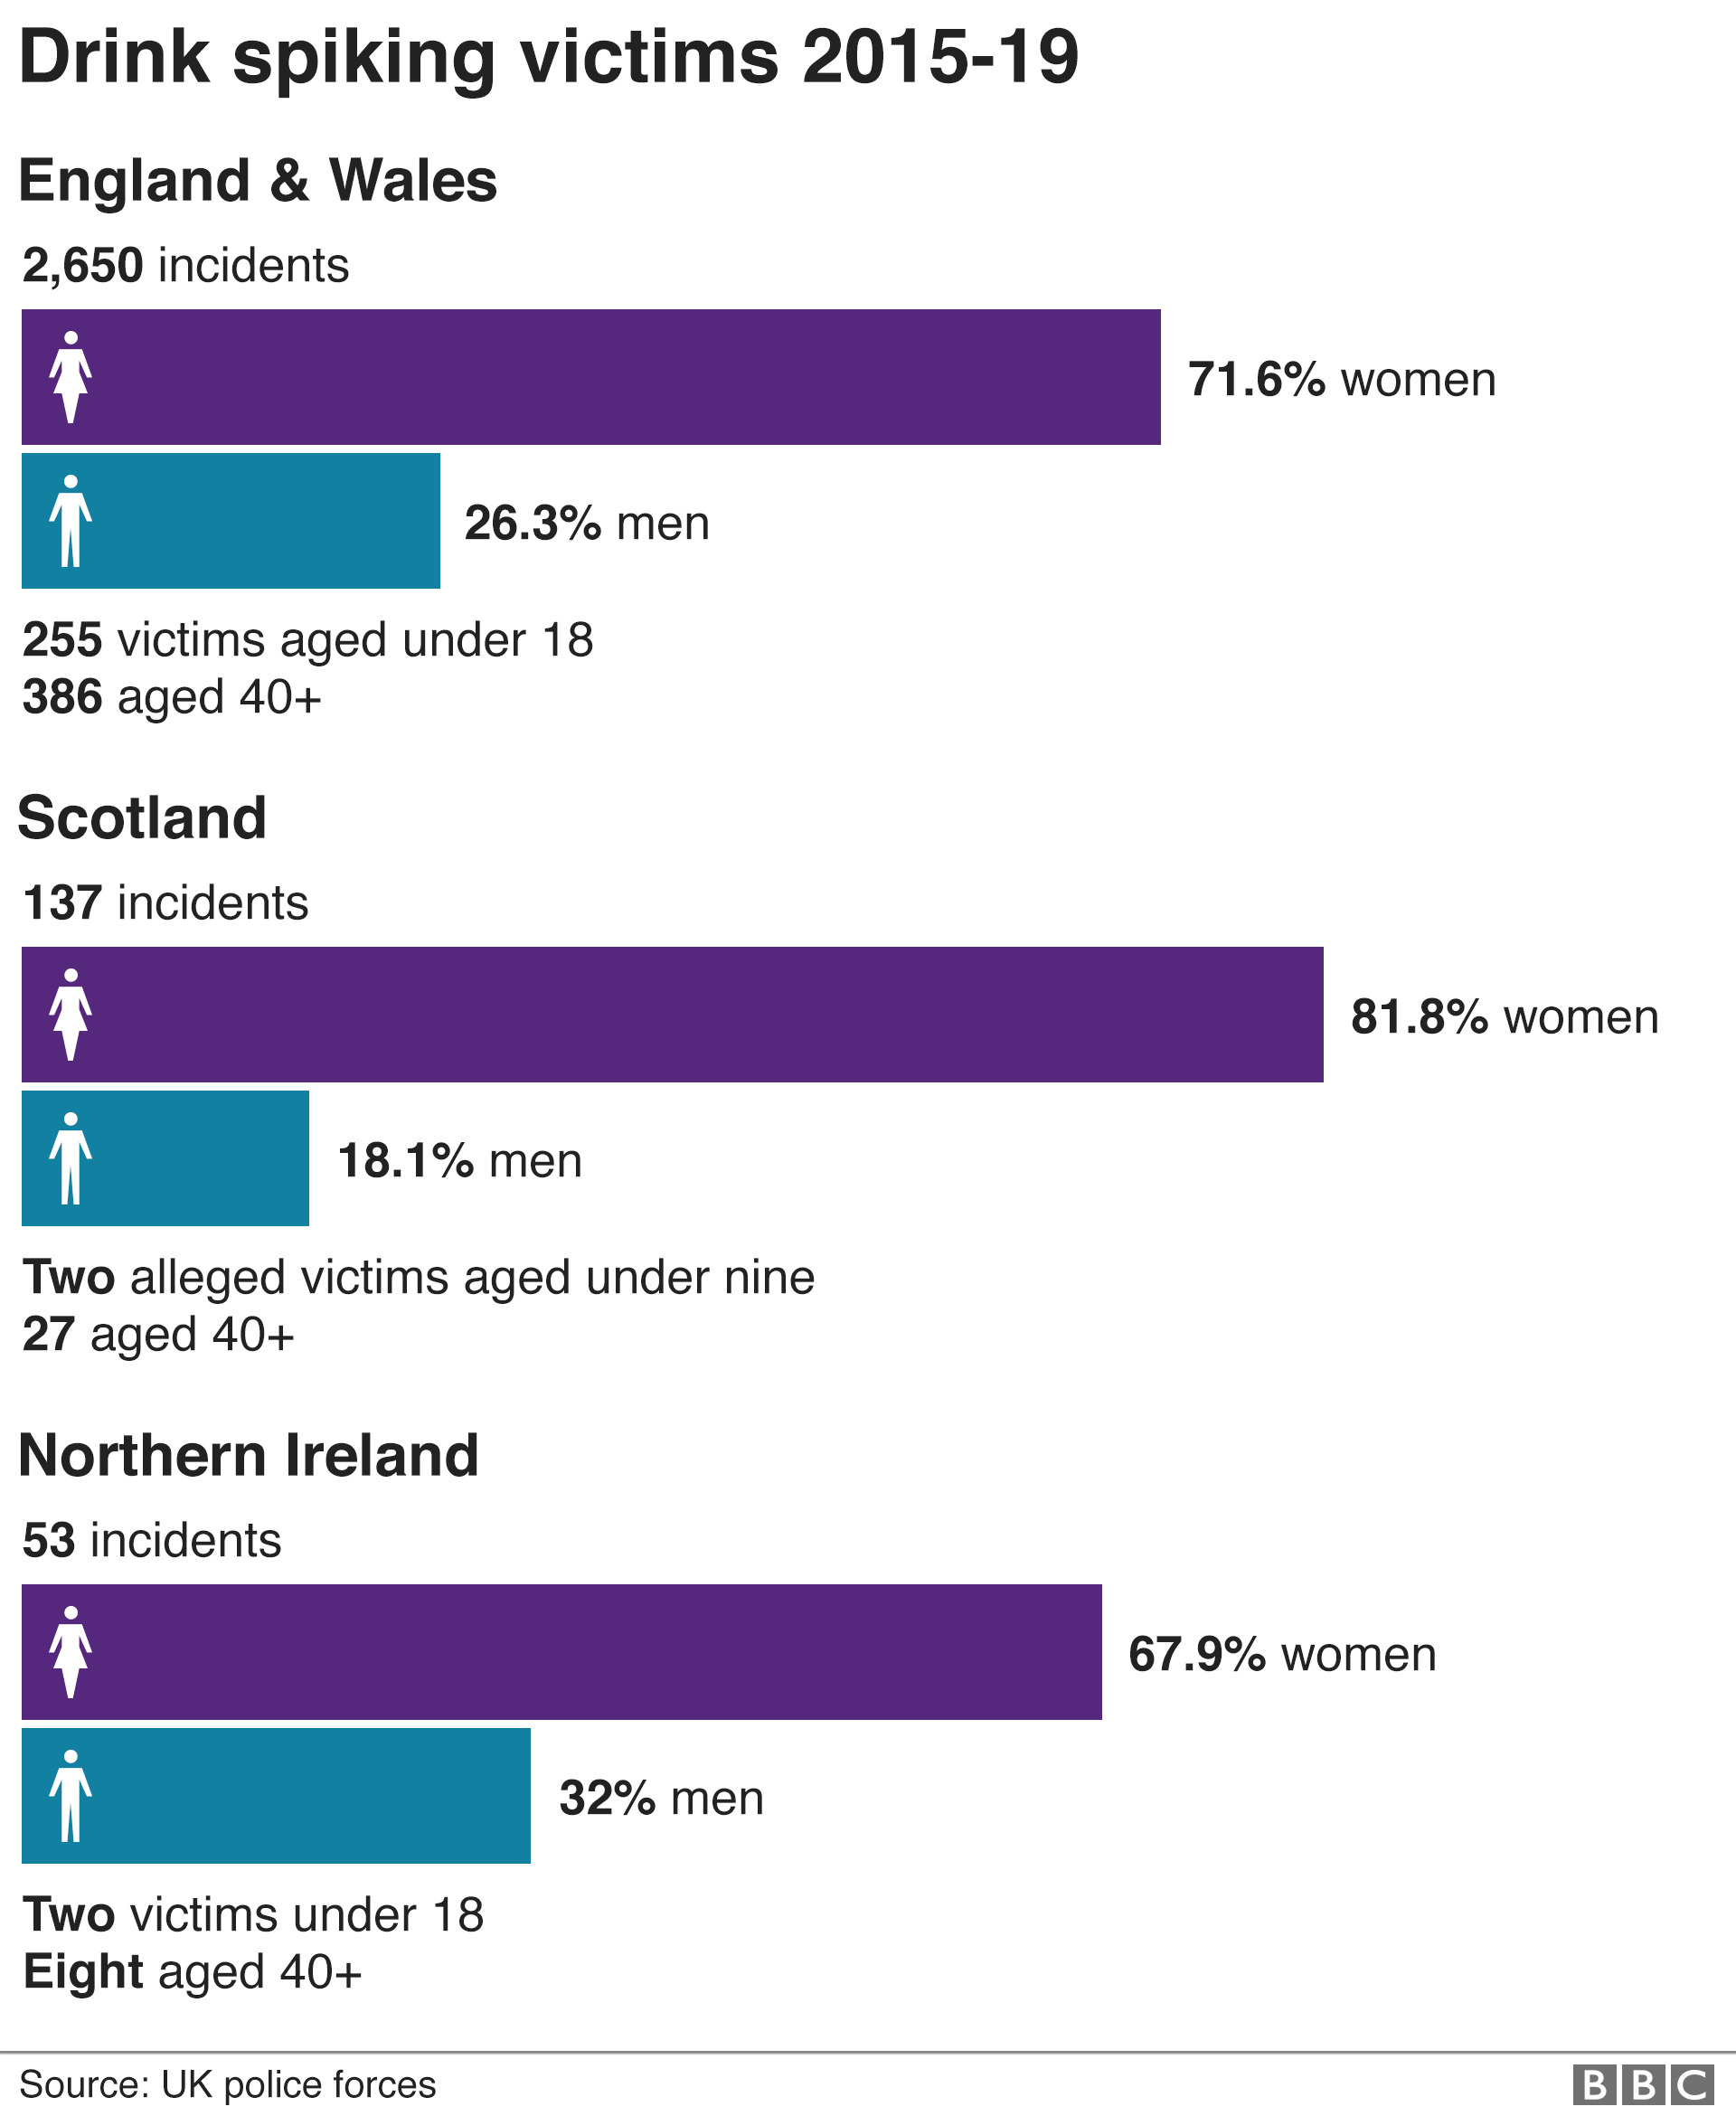 Bar graph showing the numbers of drink spiking victims between 2015 and 2019 in England and Wales. It shows of the 2,650 incidents 71.6% were women and 26.3% were men.